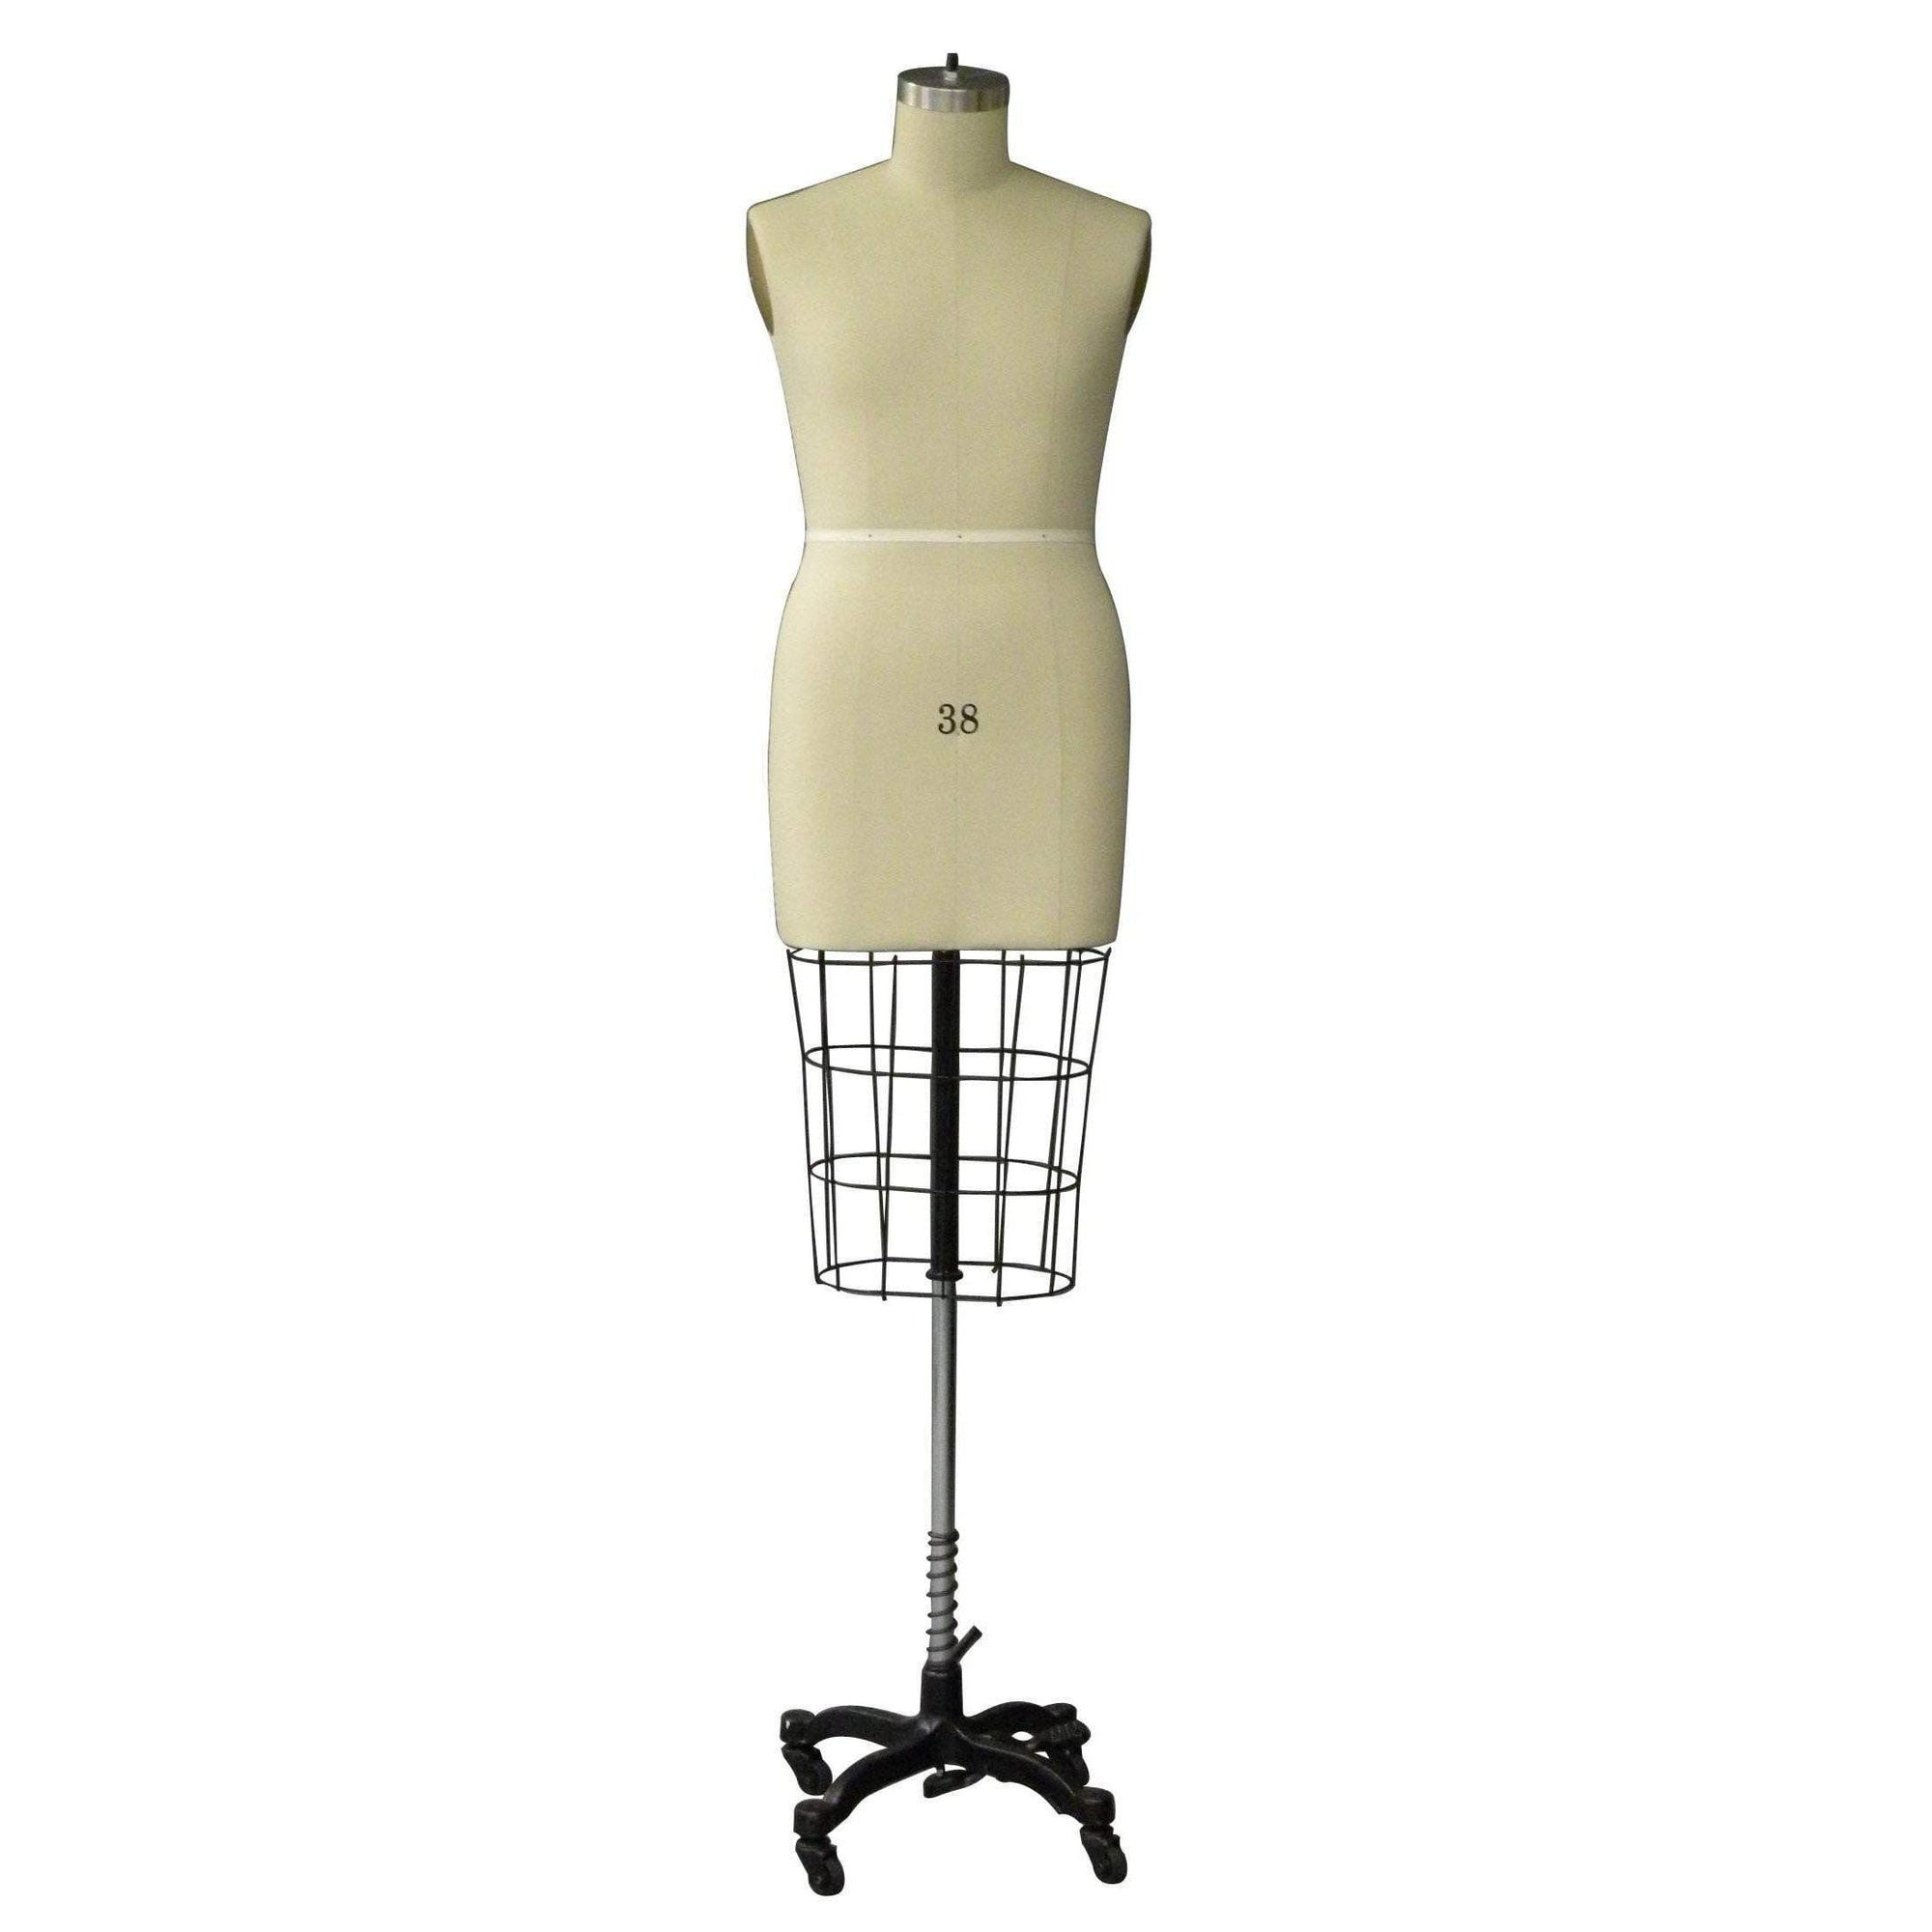 Male Professional Dress Form Half Body Mannequin Mall